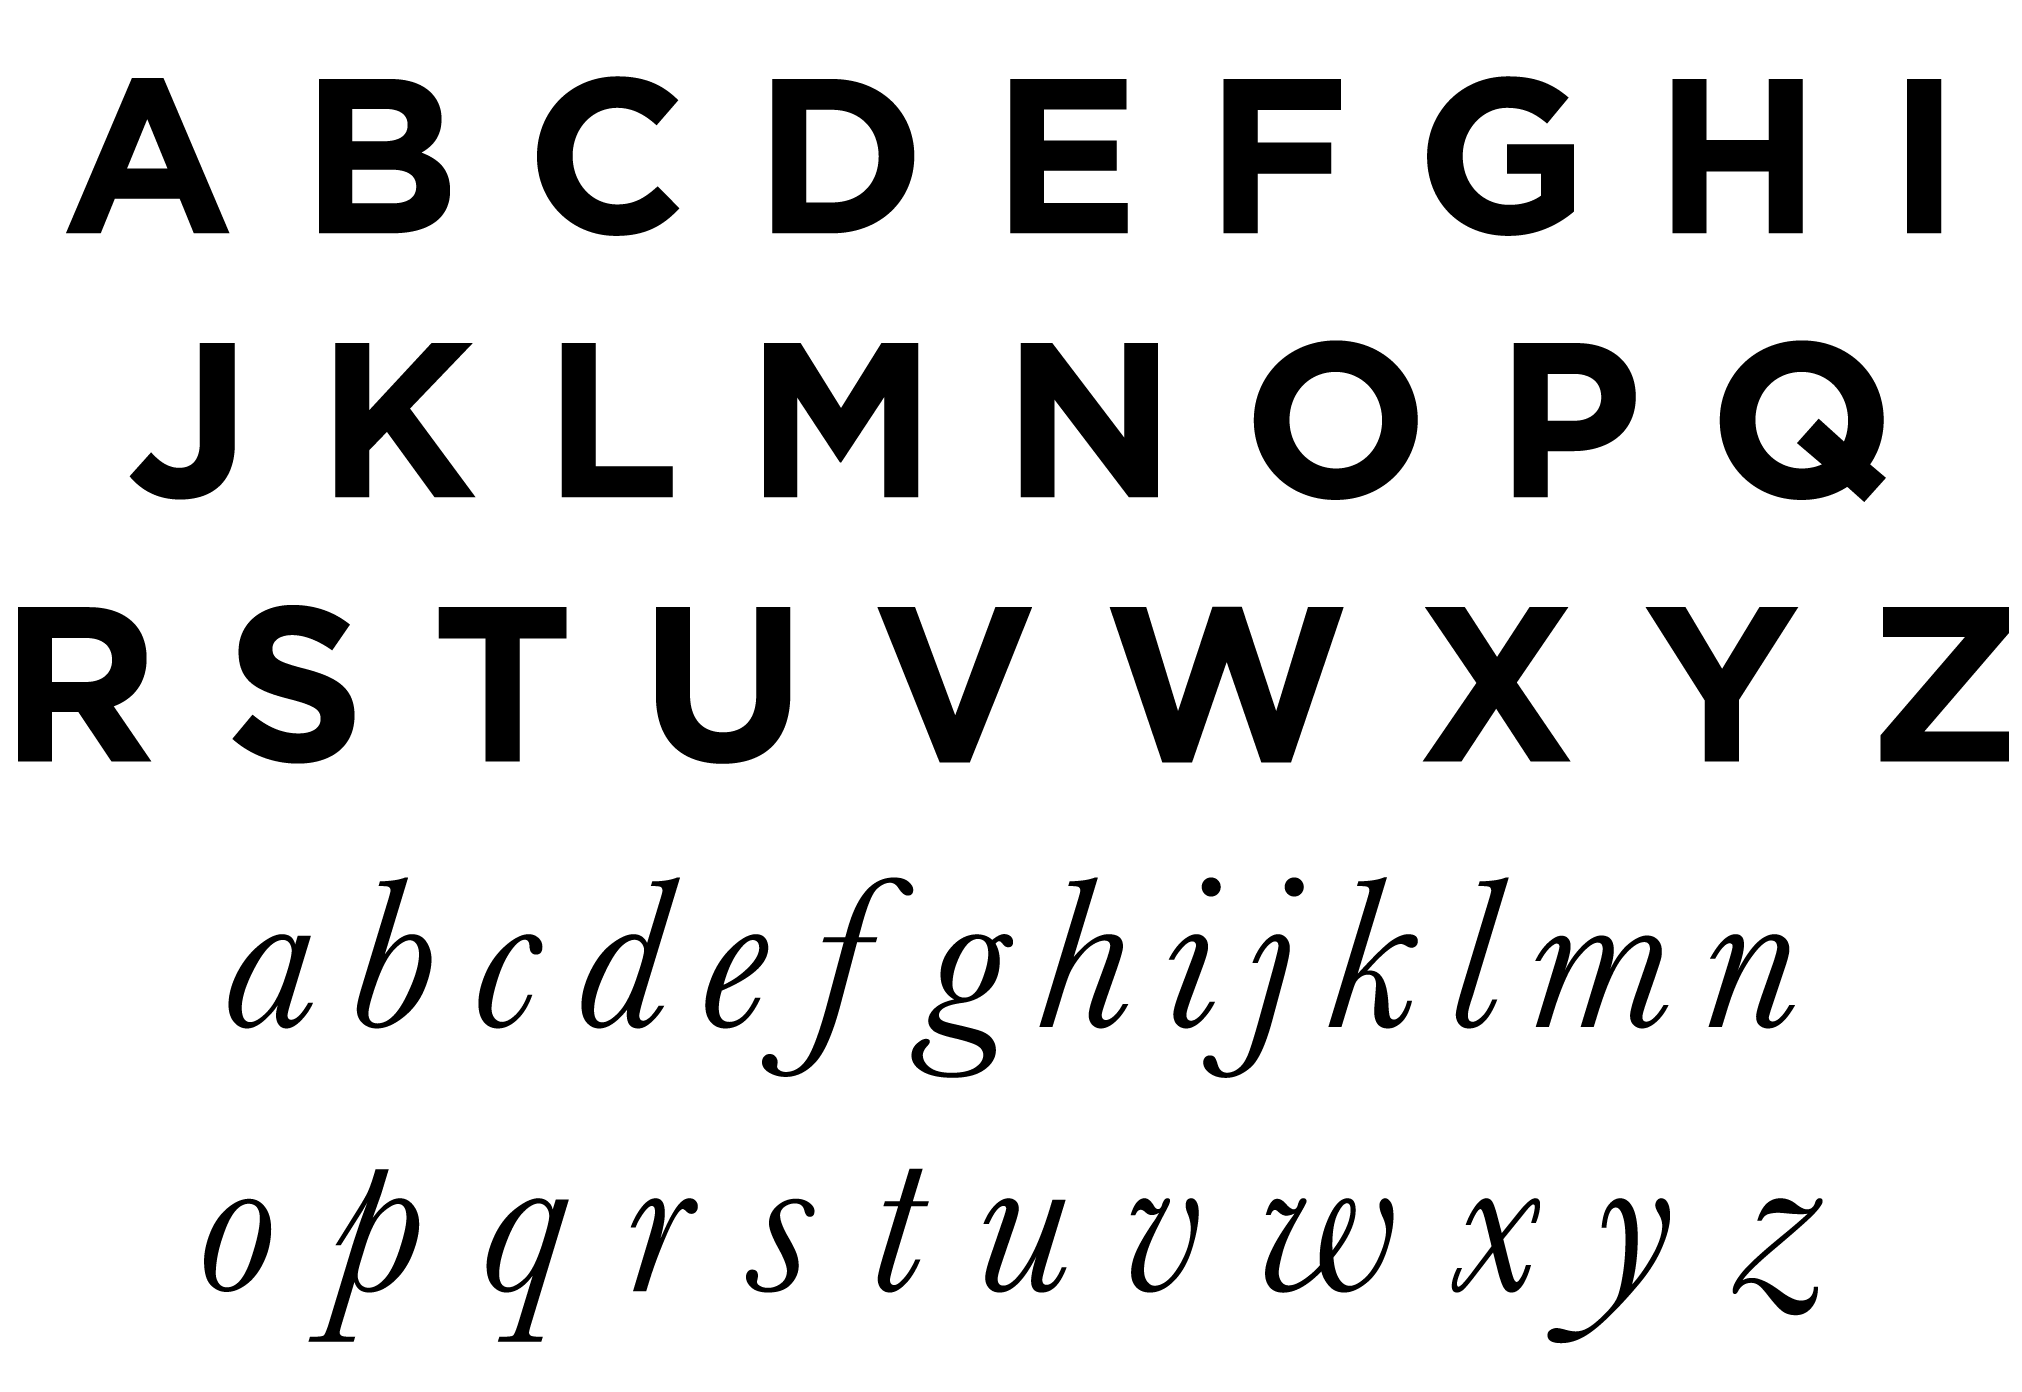 How To Make Words From Letters